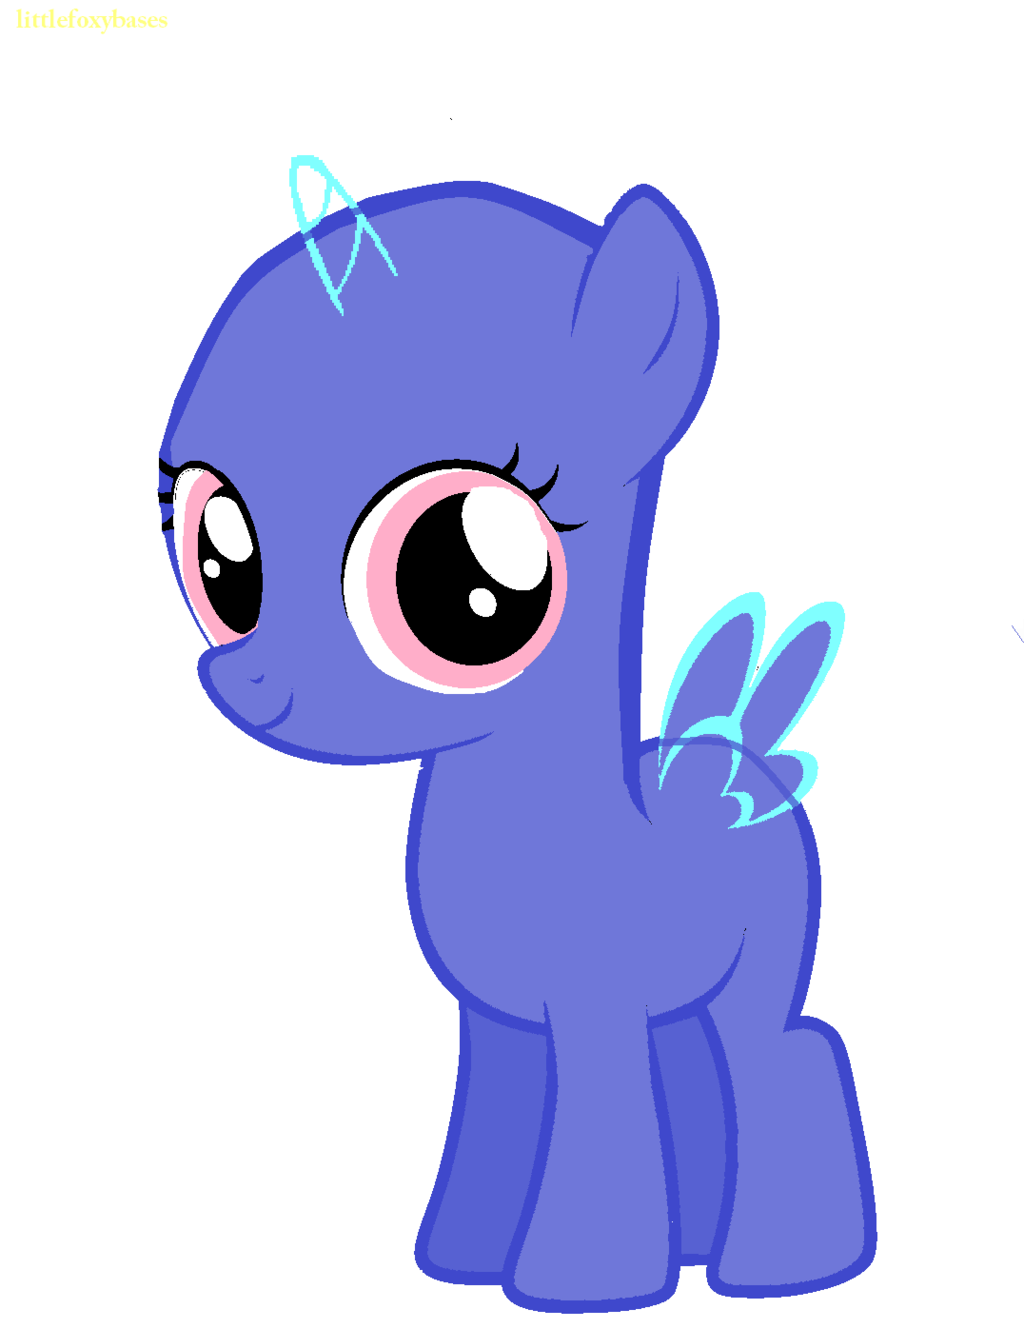 Mlp Filly Base by LittleFoxyDash on DeviantArt.